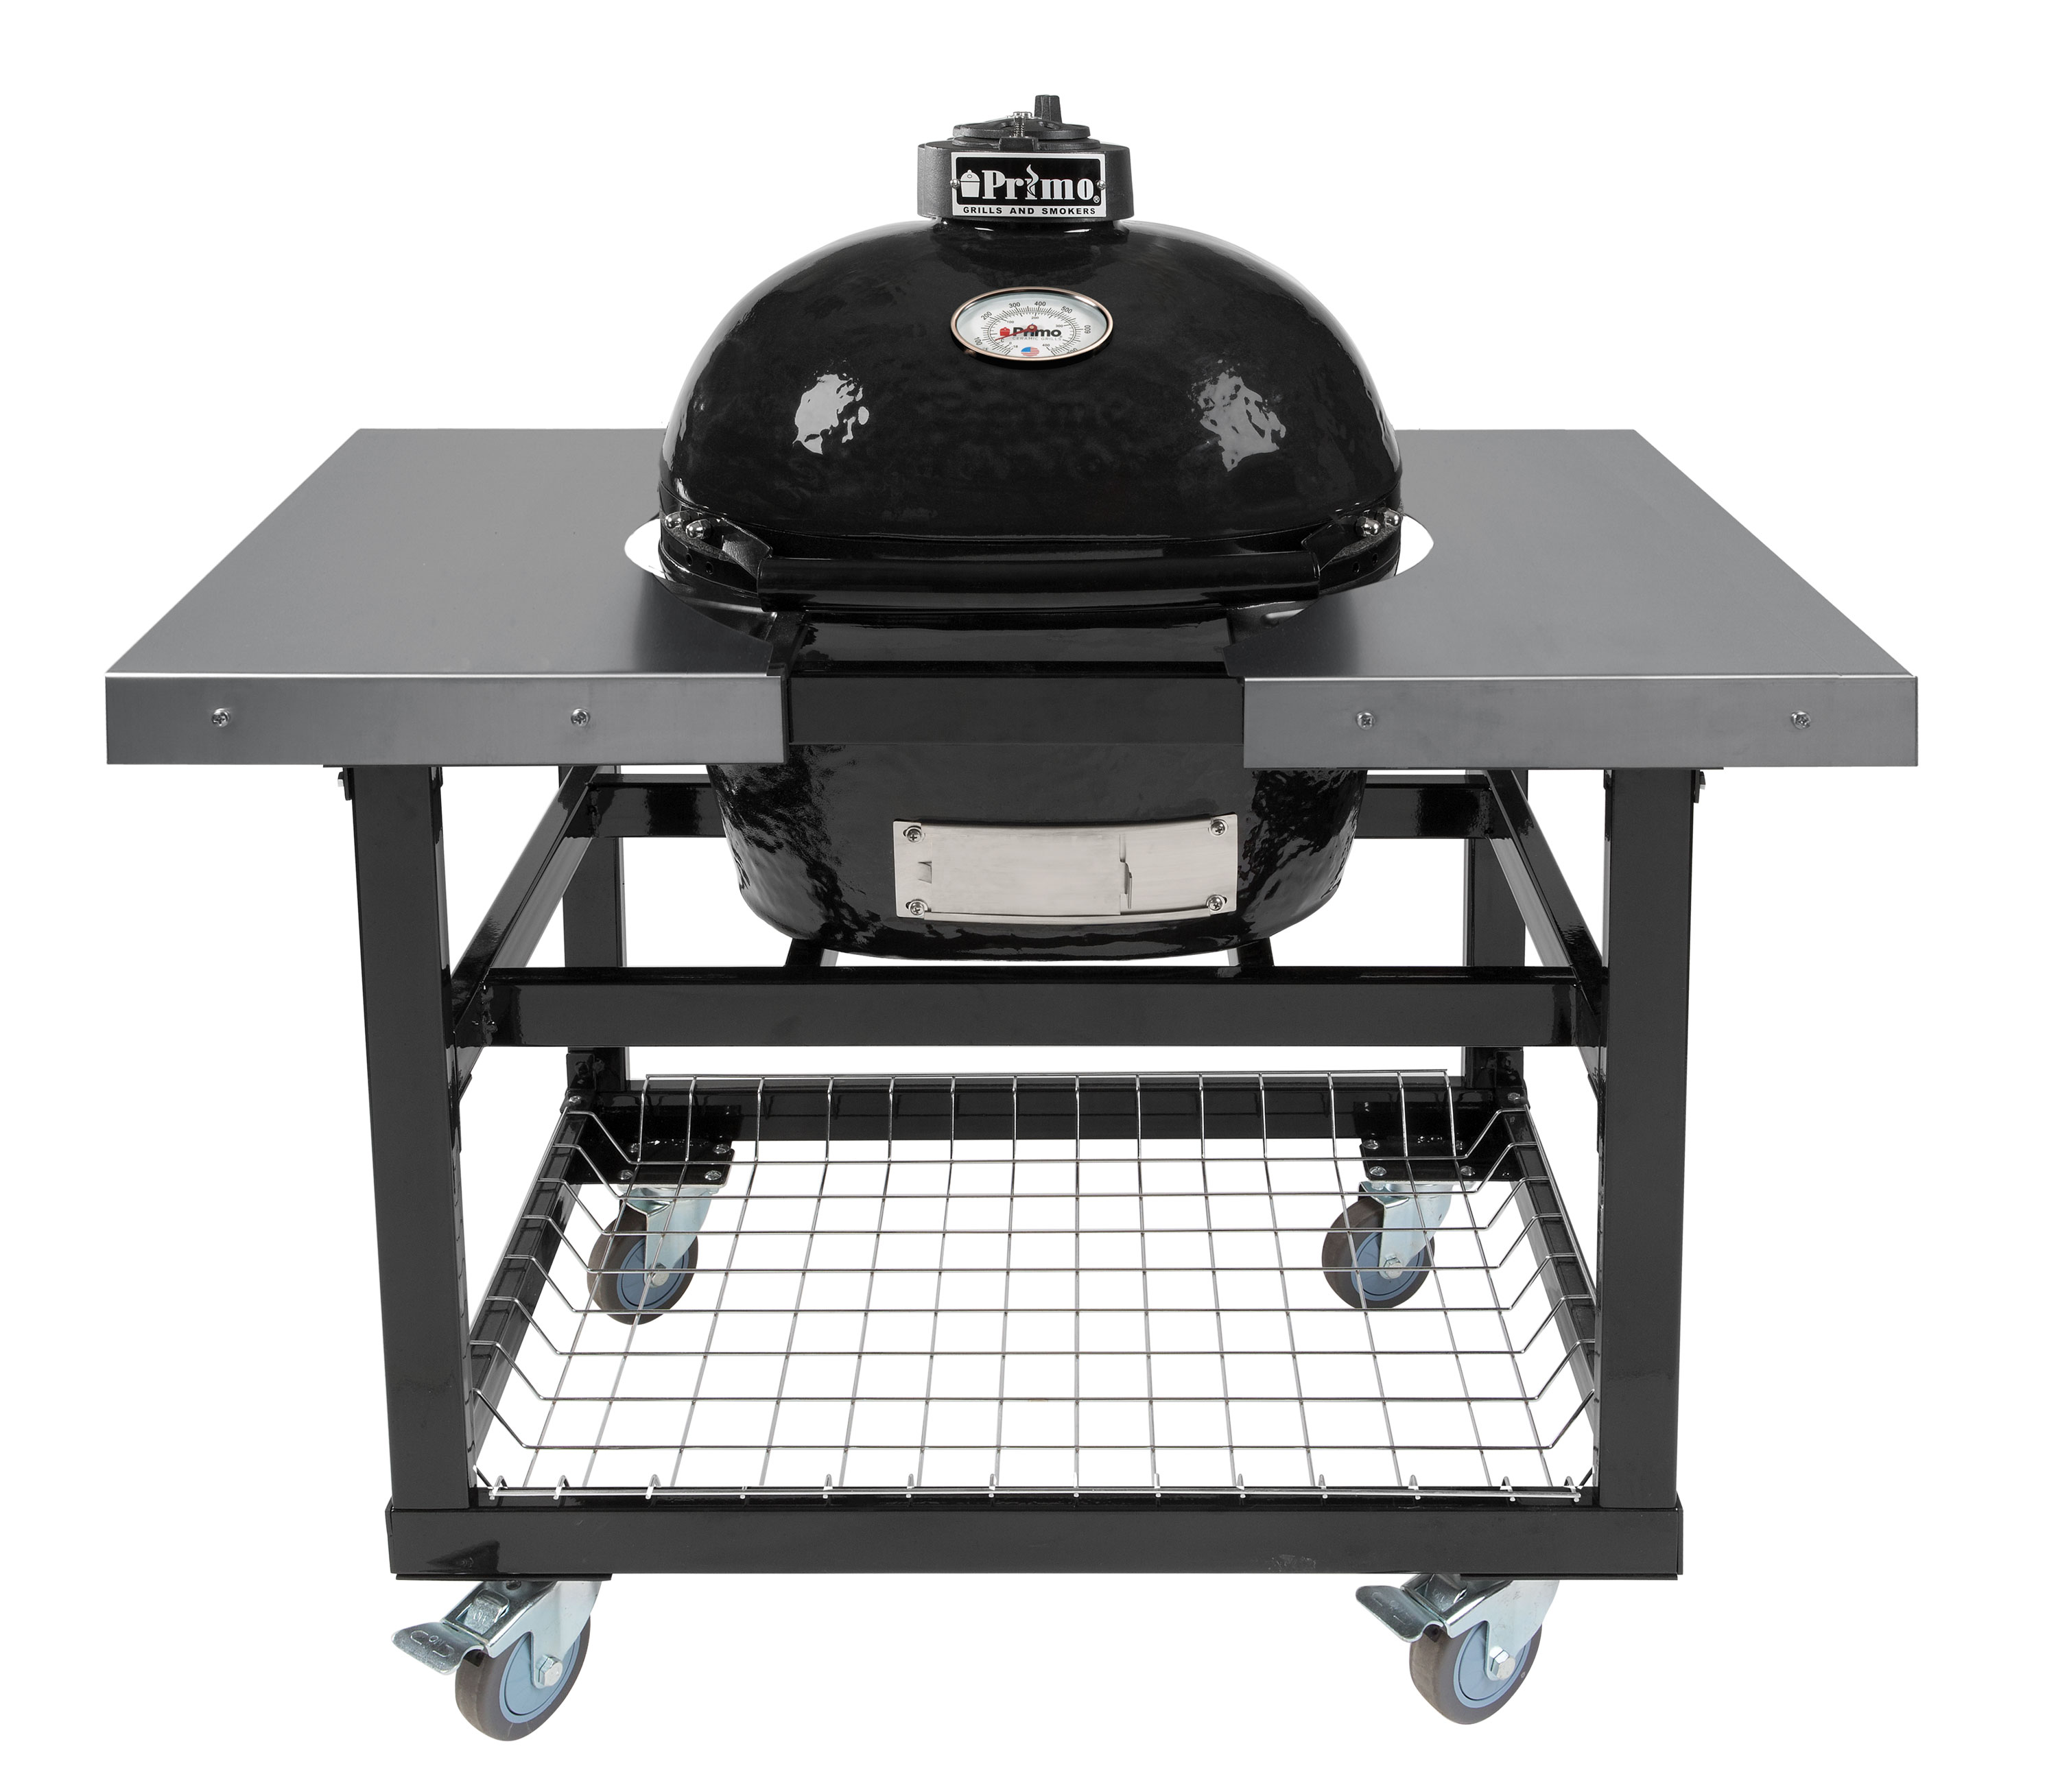 Primo Ceramic Grill Oval Jr 200 Alabama Gas Light Amp Grill